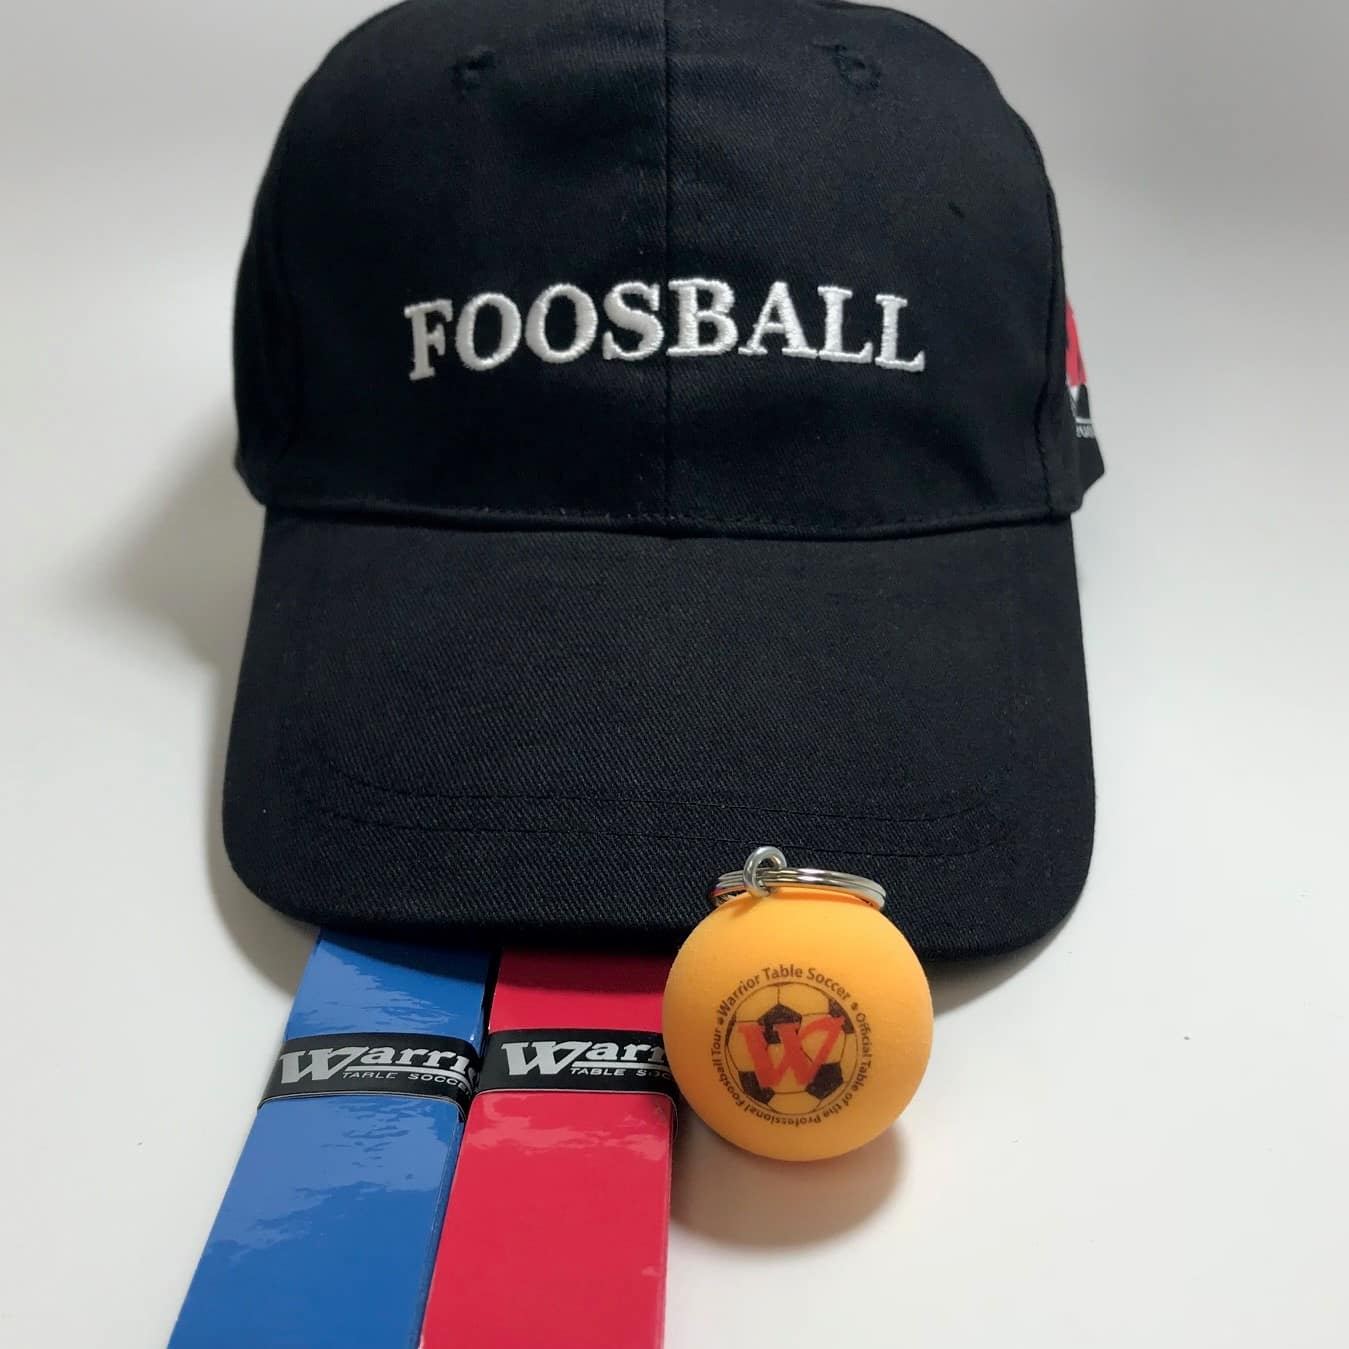 hat, keychain and wraps